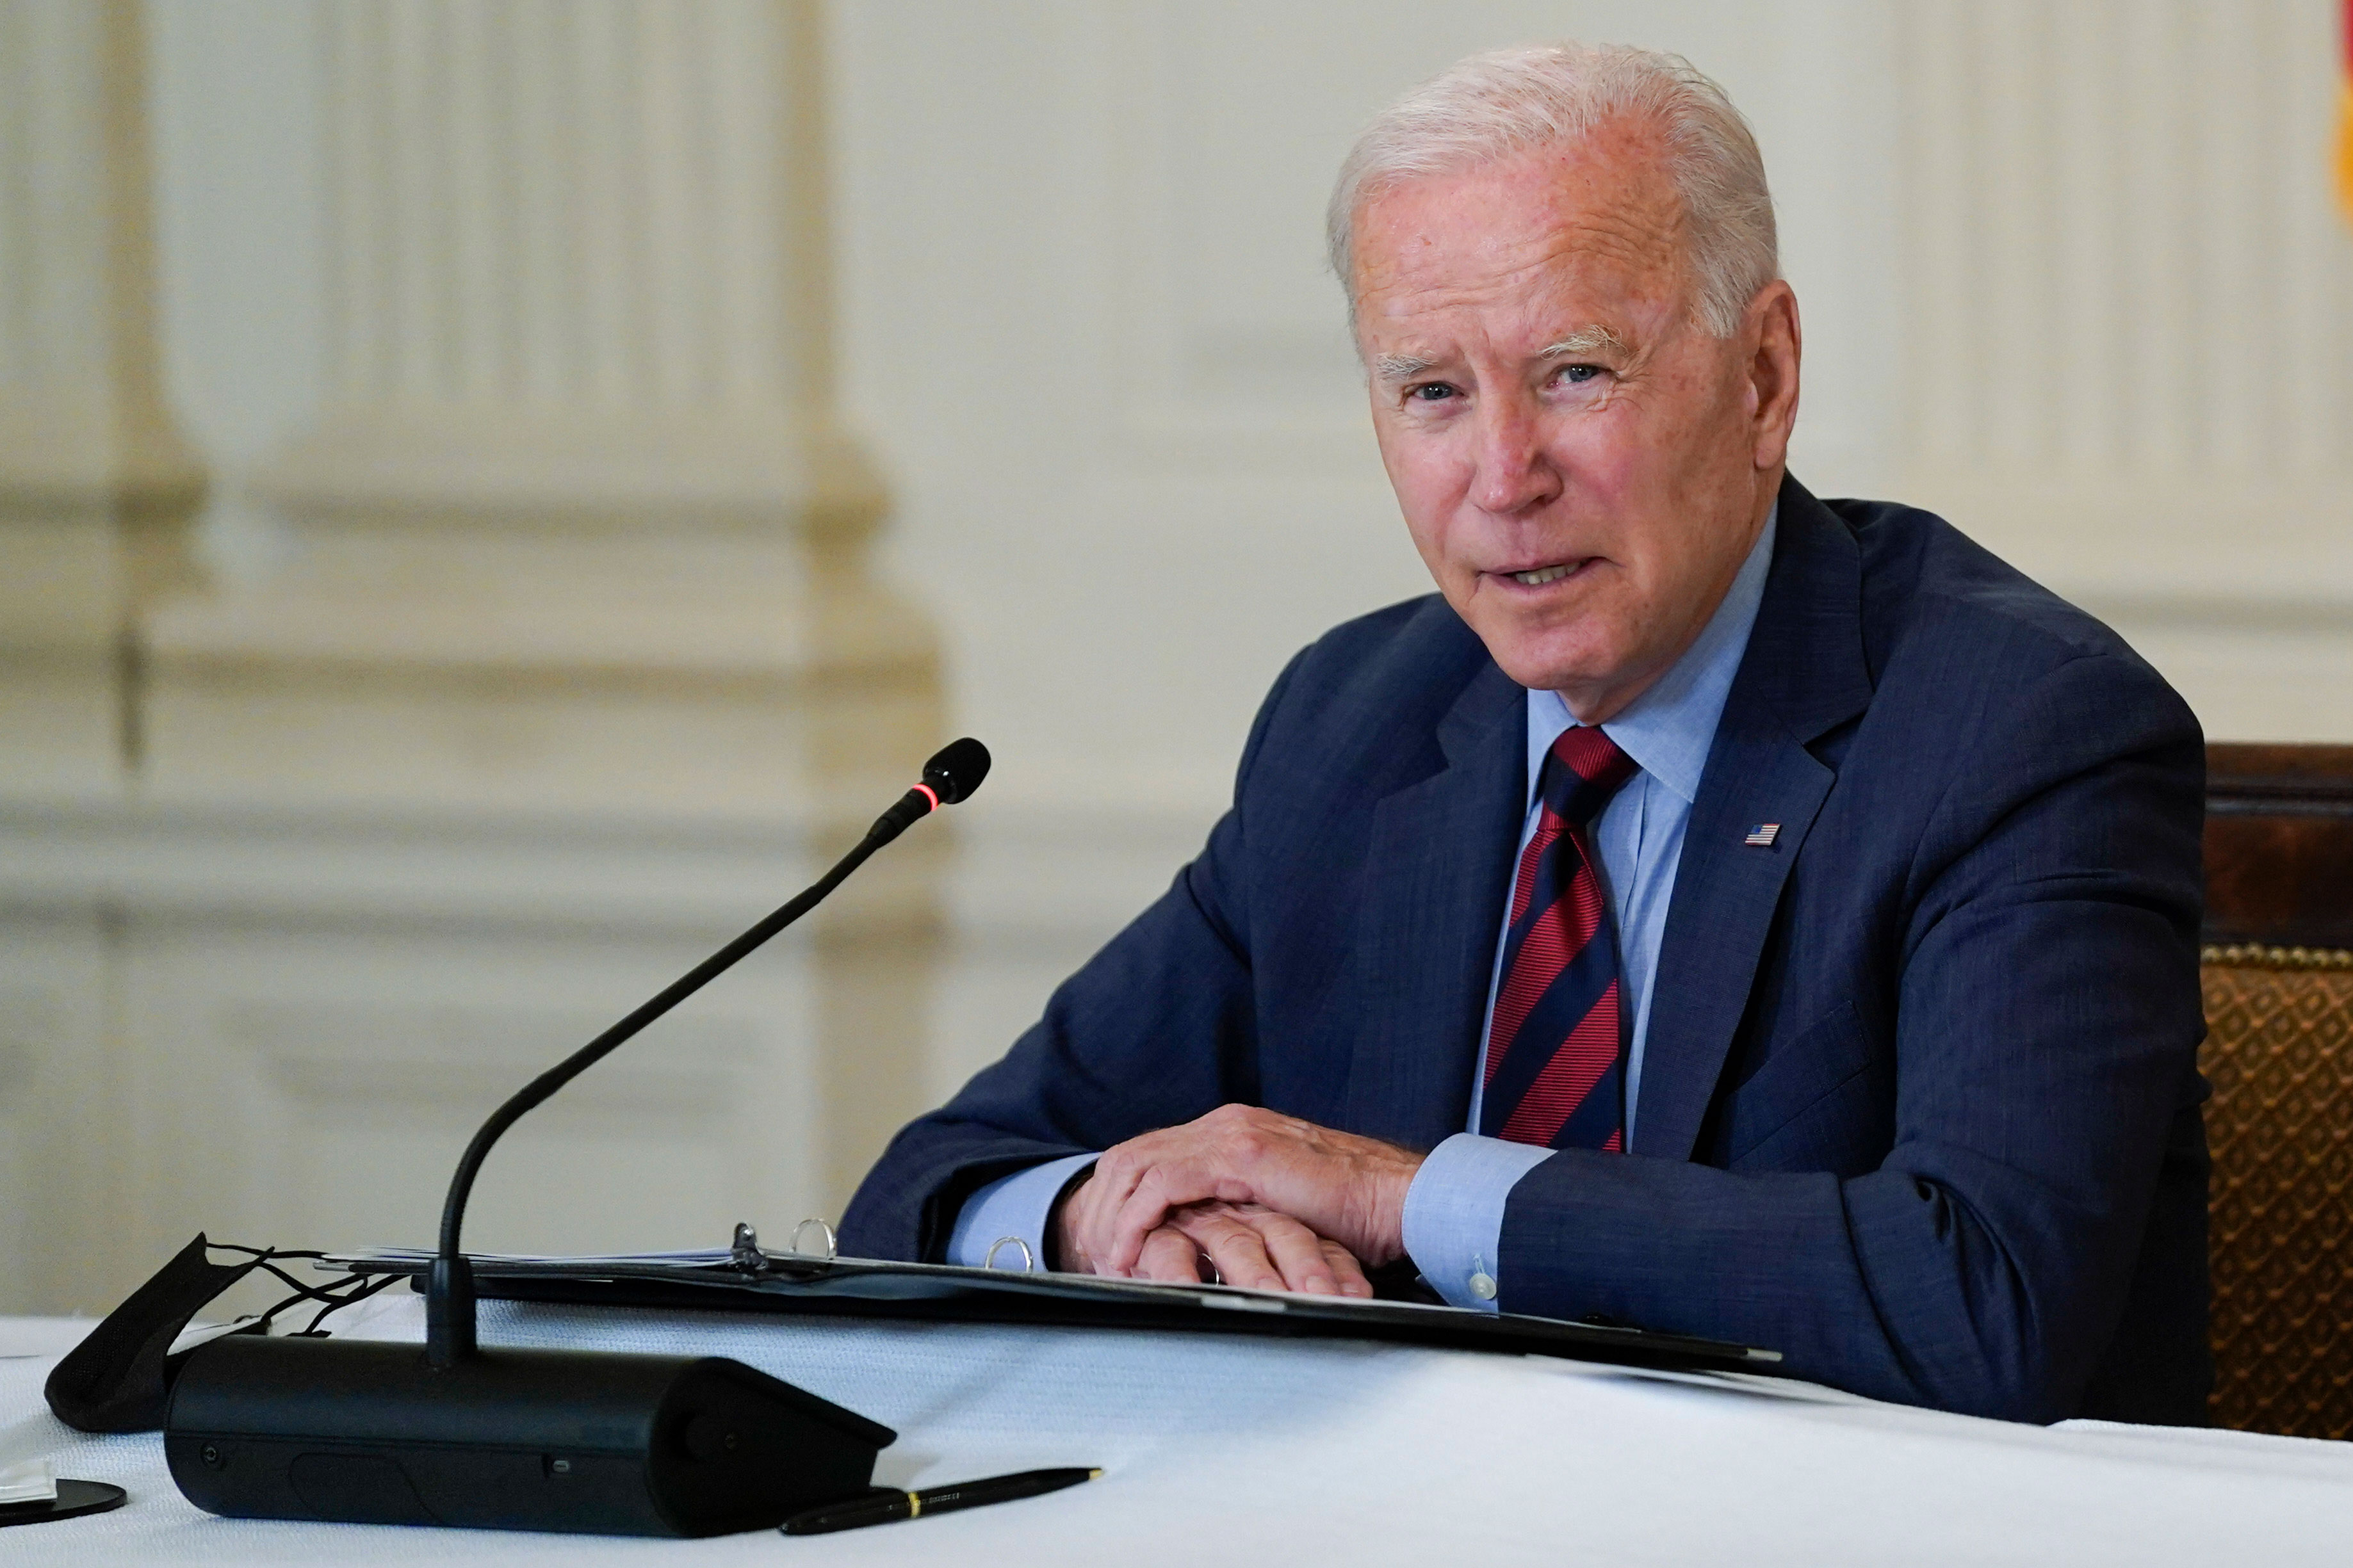 President Joe Biden speaks in the State Dining Room of the White House, on Tuesday, August 3.